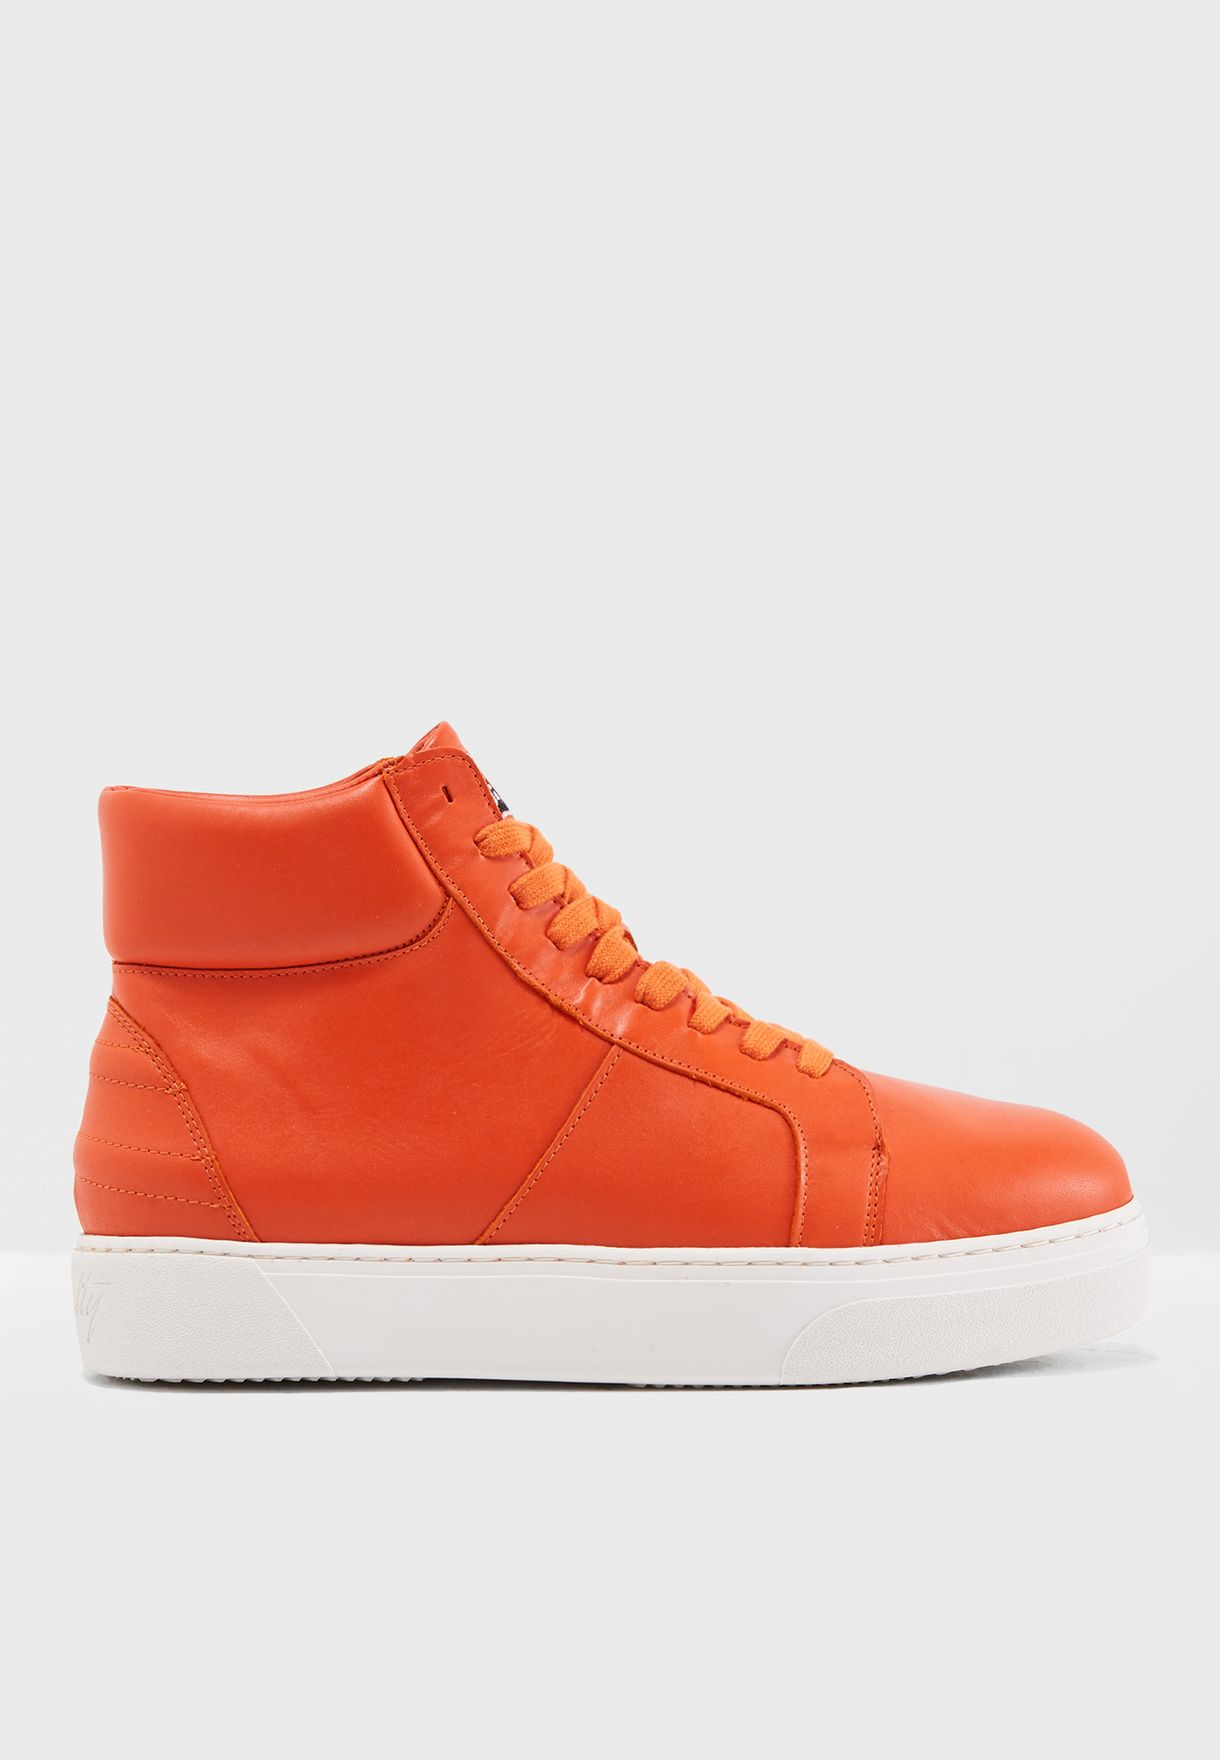 6b3f6ec837da1b Shop Tommy Hilfiger orange Lewis Hamilton Hybrid High Top ...